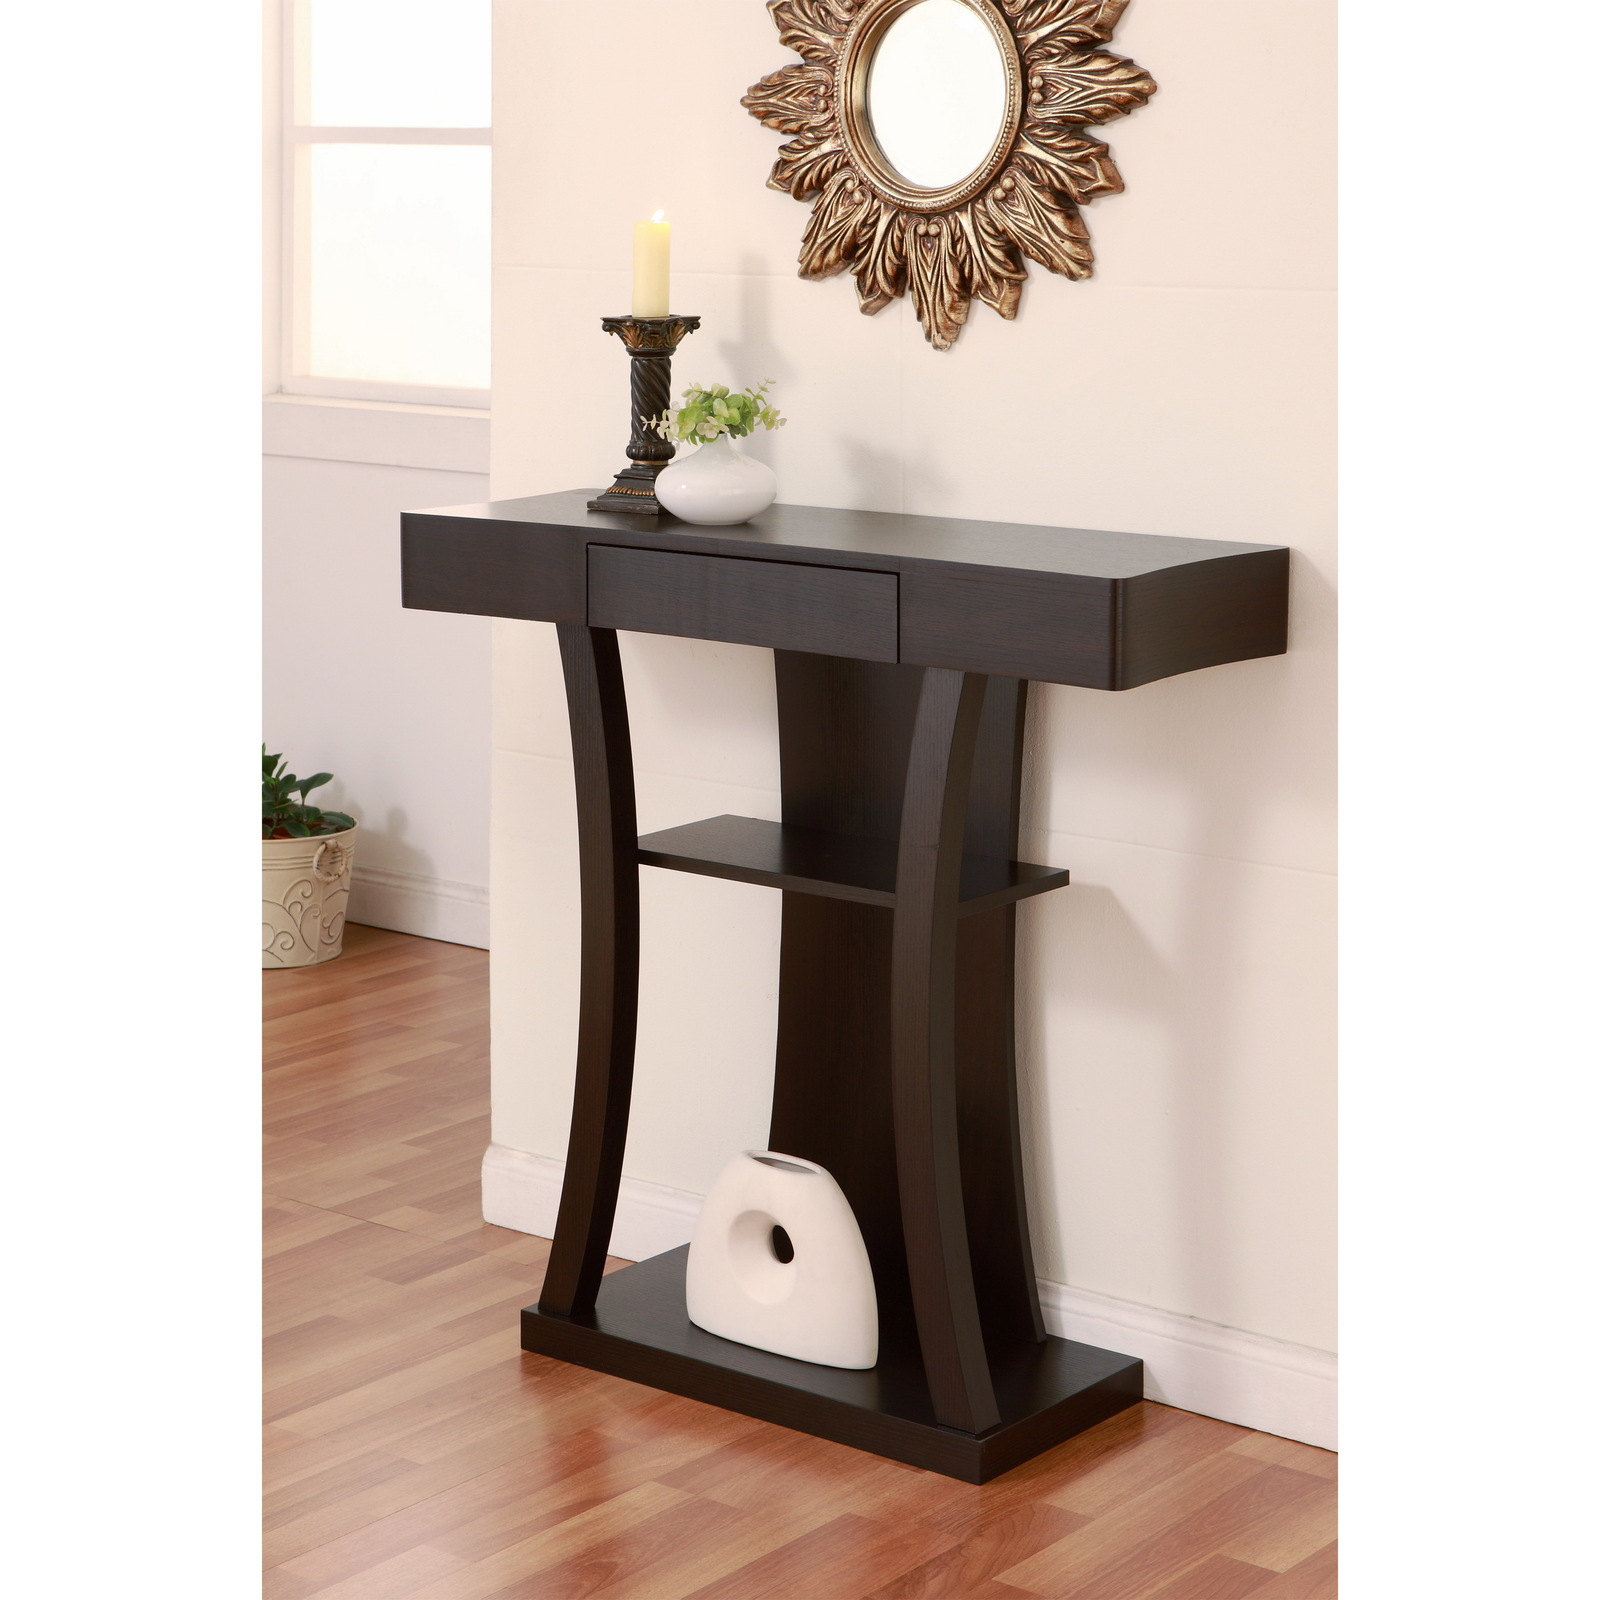 cappuccino finish console table for living room dining room or hall tables. Black Bedroom Furniture Sets. Home Design Ideas